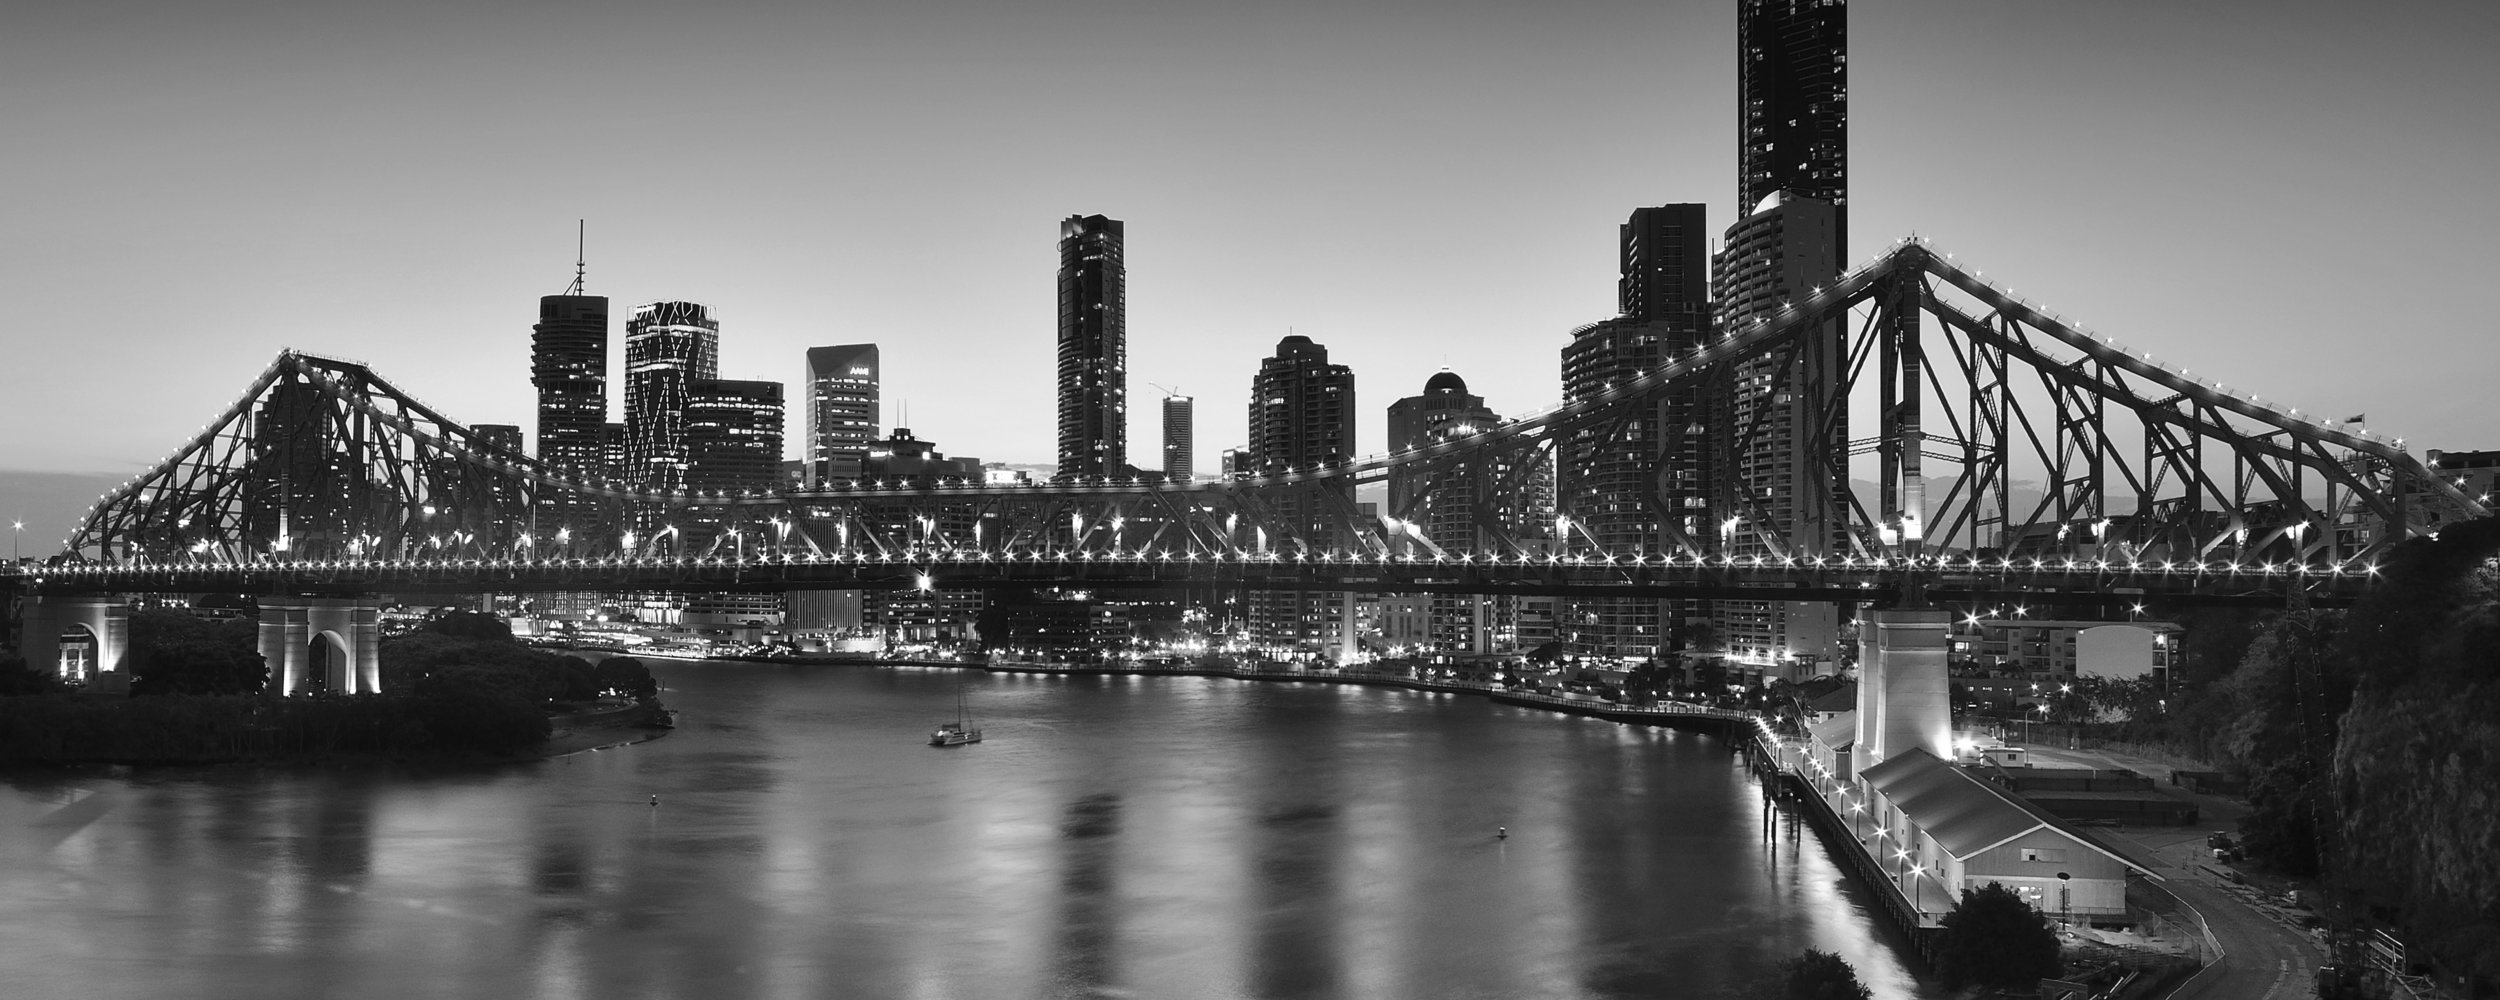 - Ronan Fox is a commercial law firm situated in the heart of Brisbane's CBD.We have specialised knowledge and experience in providing professional and legal advice and financial planning.